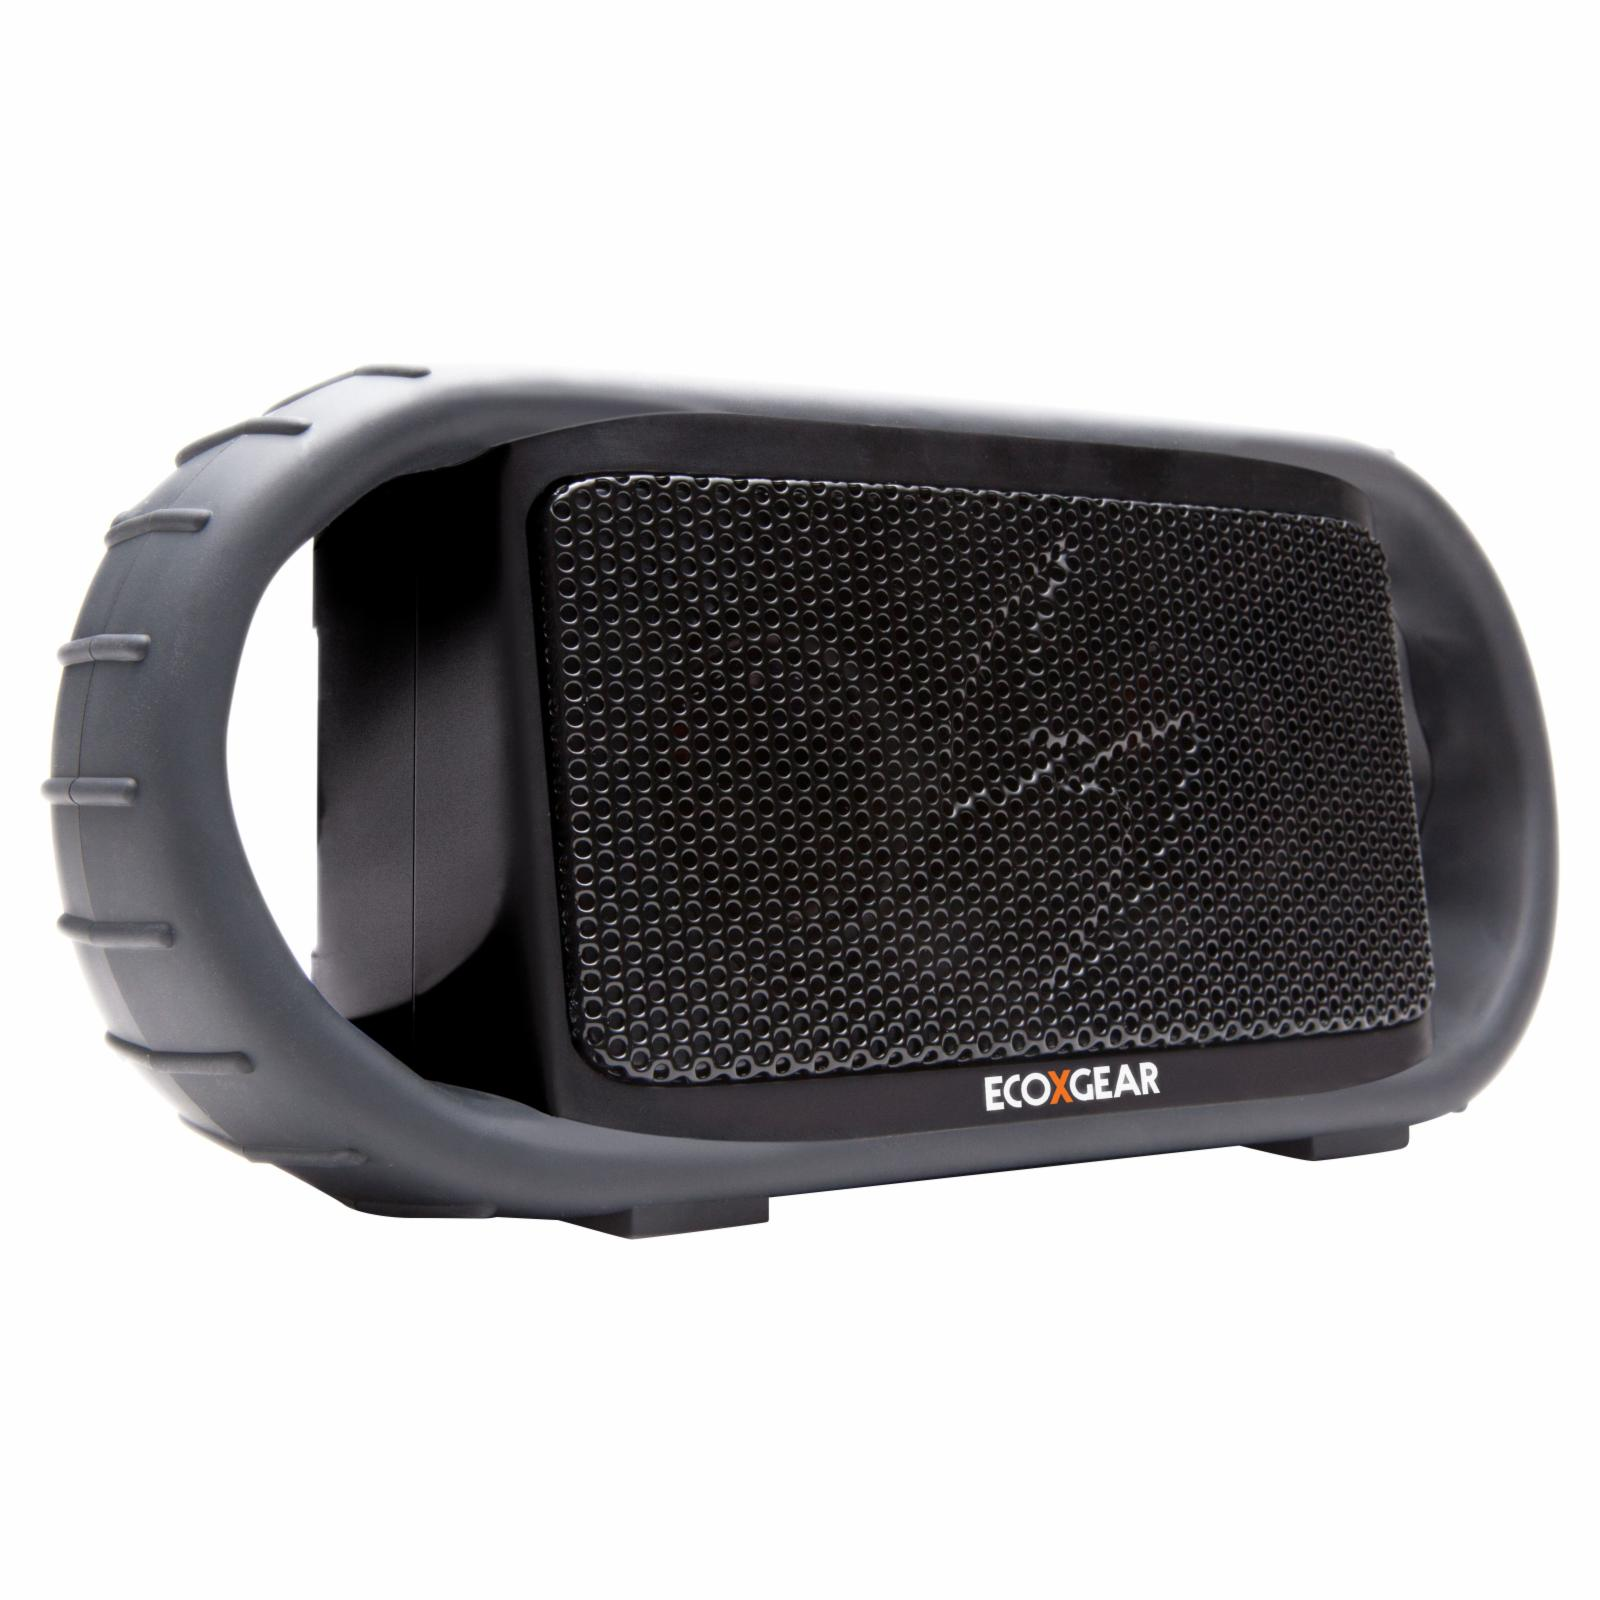 Grace ECOXBT- Waterproof/Submersible/Shock Resistant BT Speaker/speakerphone - A one of a kind portable audio system that combines Bluetooth, Lithium Battery and Waterproof technologies. The result is a shock resistant, floating, full range rechargeable wirele